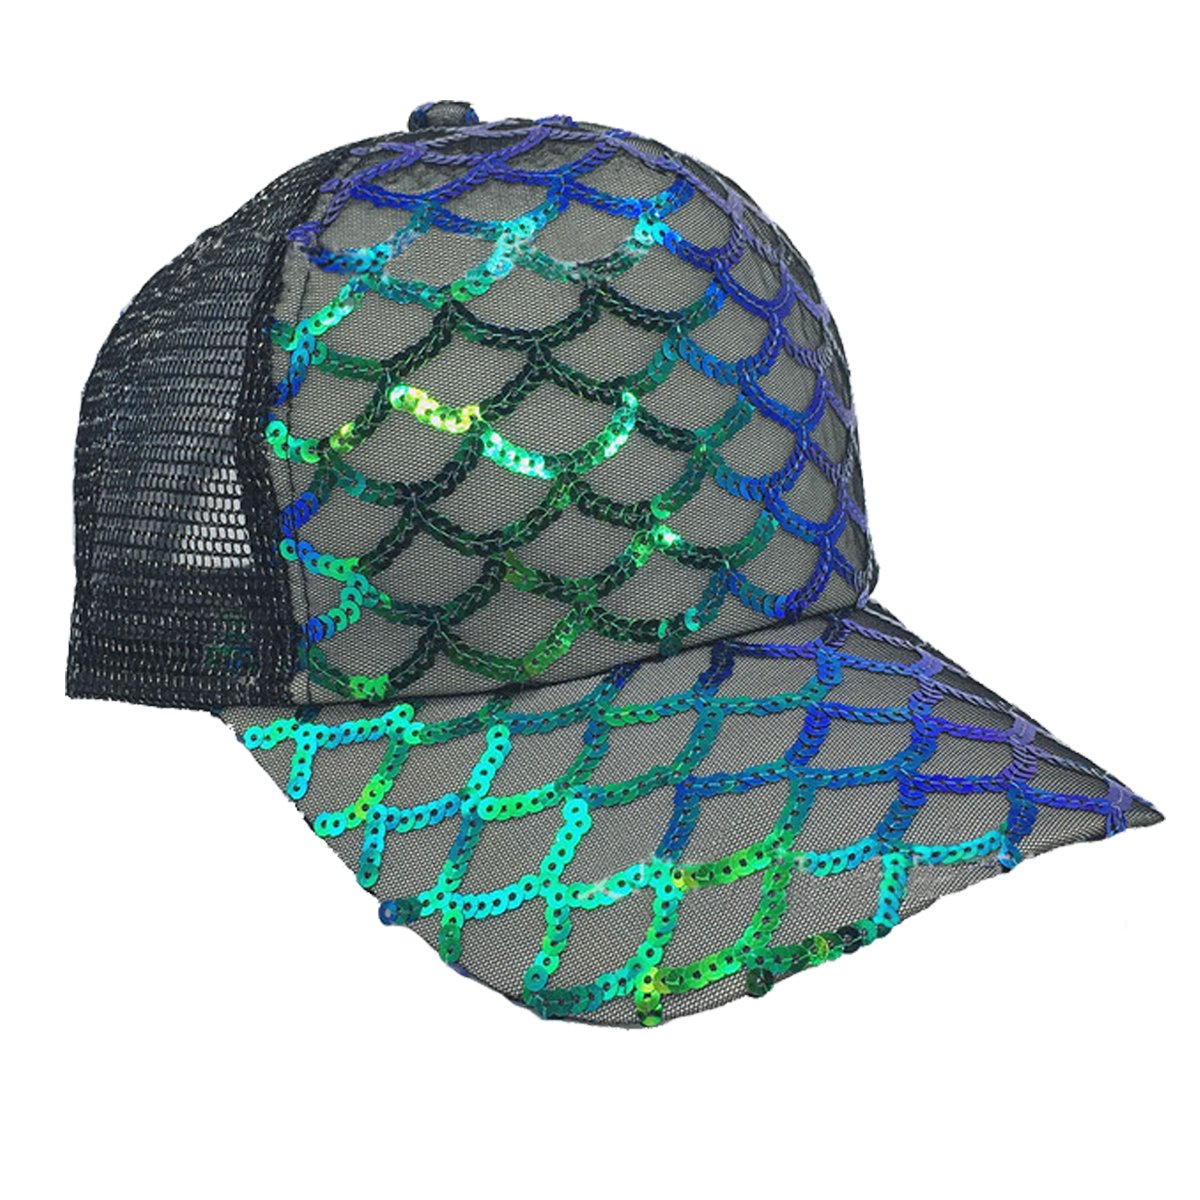 Amazon.com  Maticr Unisex Bling Mermaid Scales Sequin Trucker Hats  Adjustable Mesh Caps Baseball Party Hat (Black)  Toys   Games 9a43014f85e